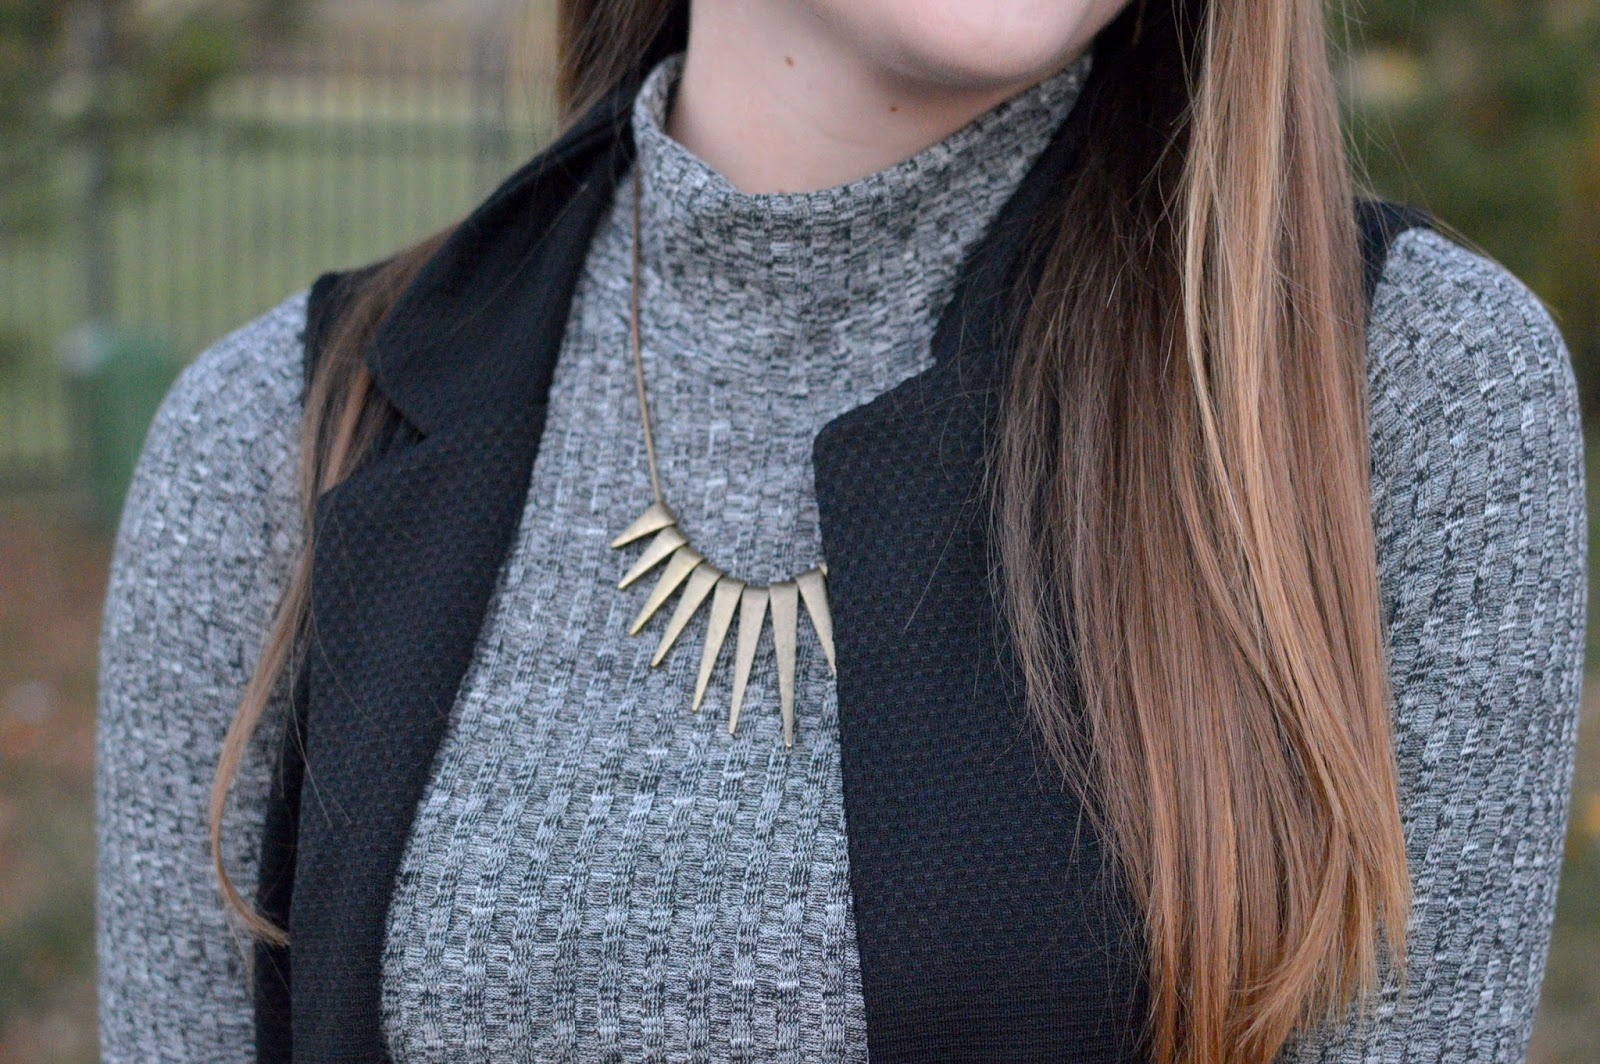 express spiked gold necklace